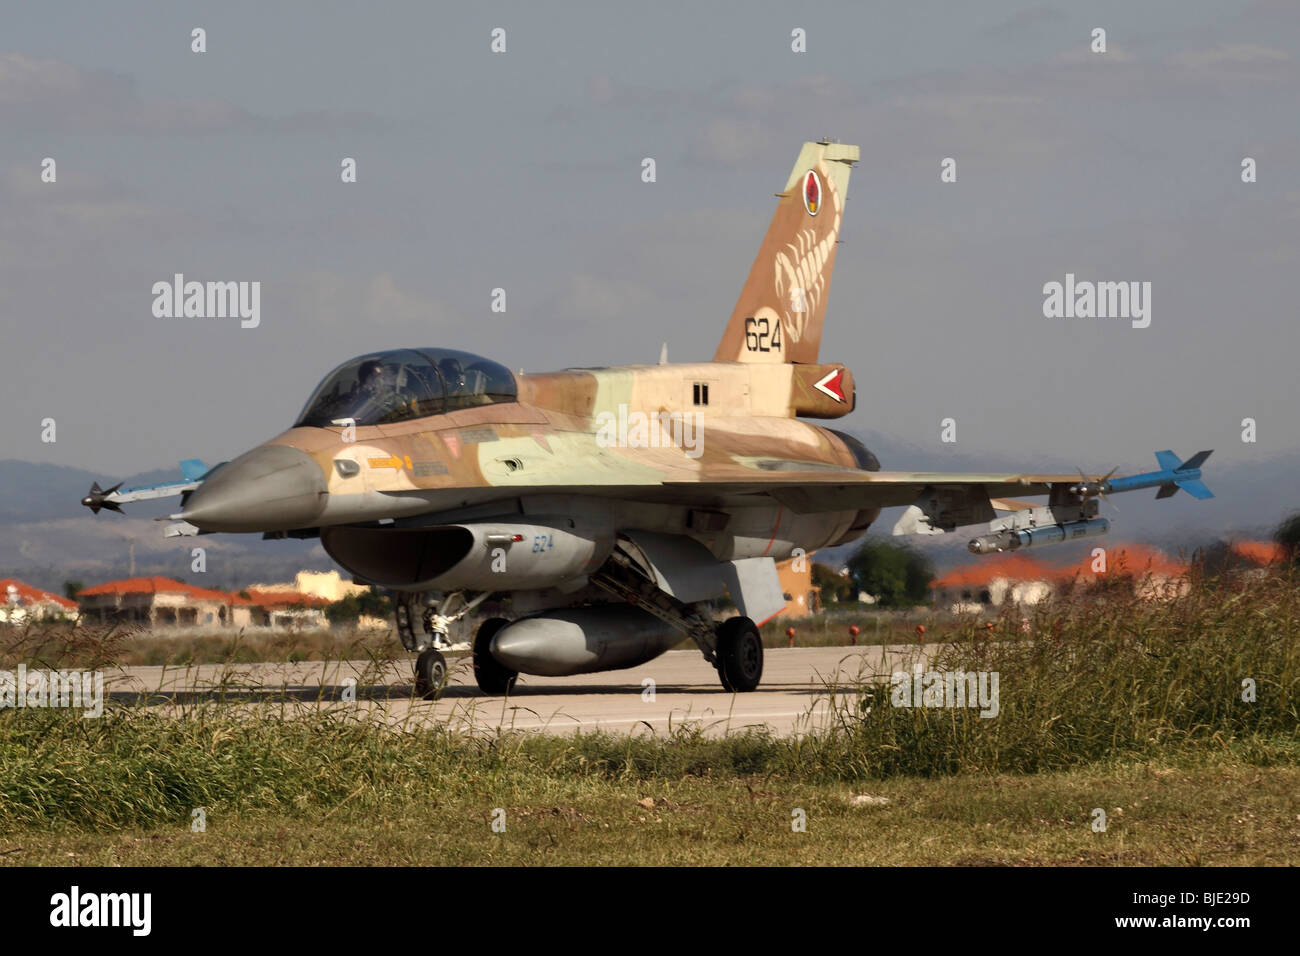 Israeli Air Force (IAF) F-16D Fighter jet at take off - Stock Image